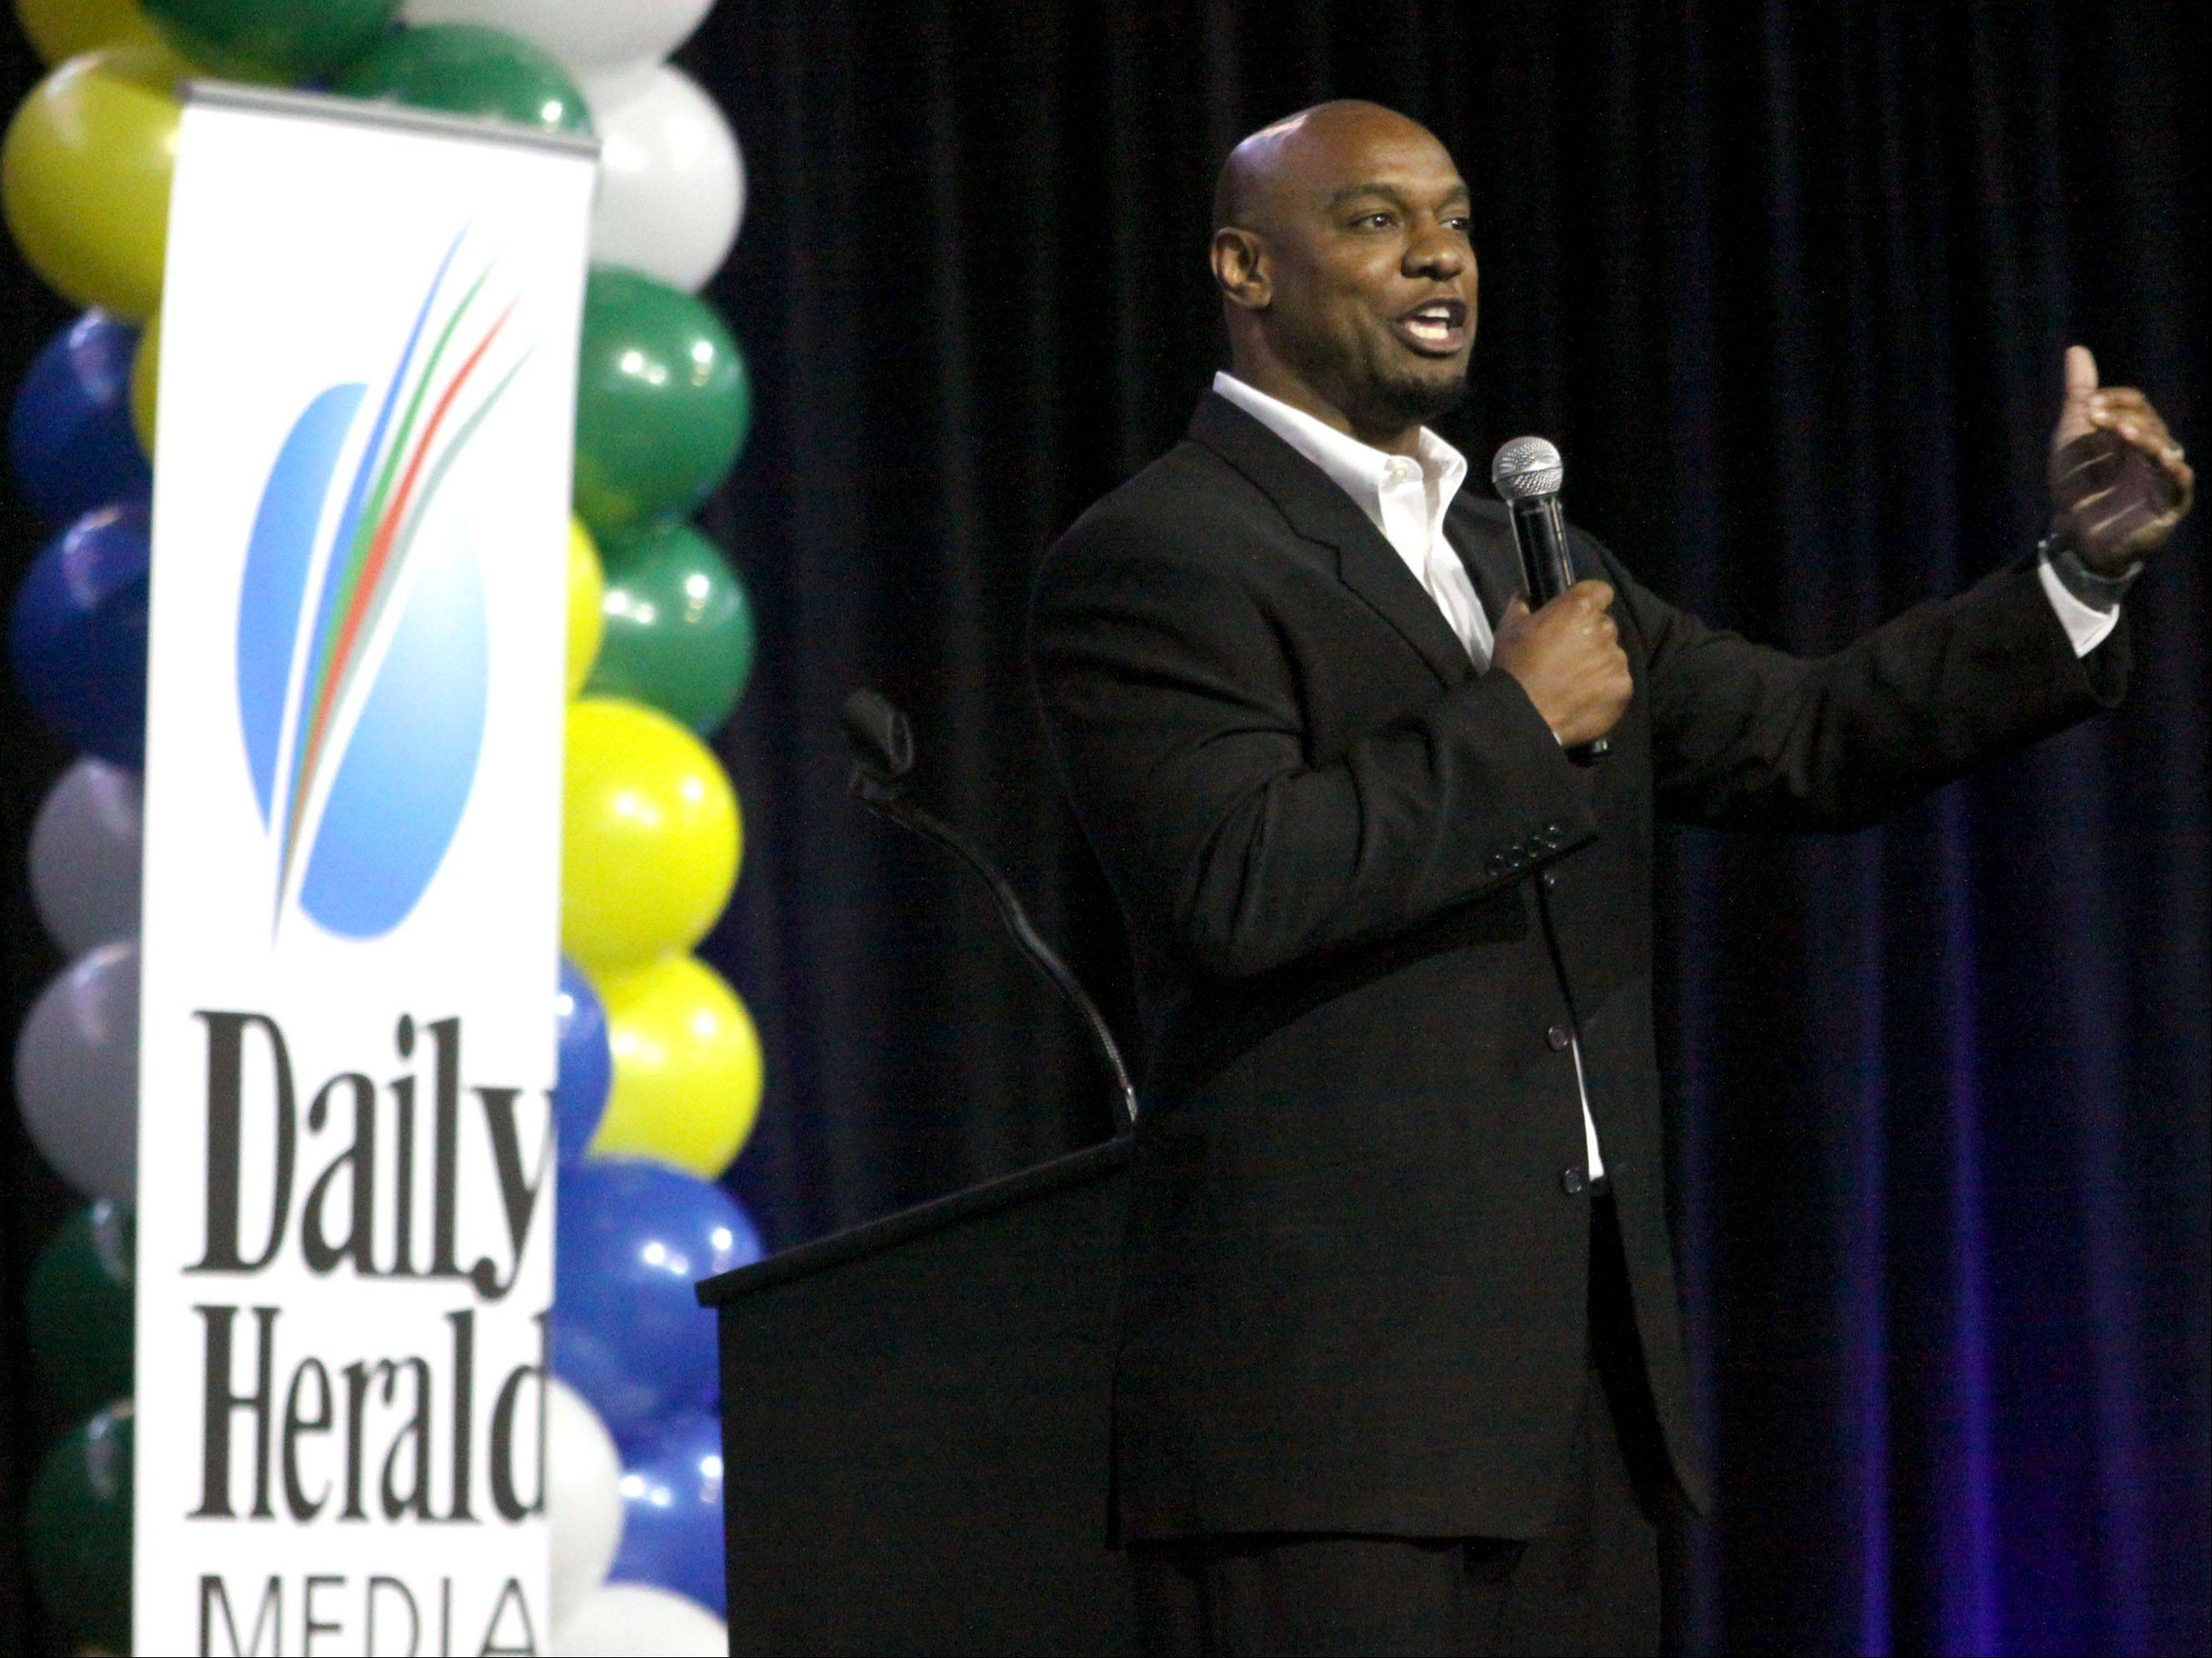 Jarrett Payton, keynote speaker, offers his remarks during the Daily Herald Prep Sports Excellence Awards Ceremony at Sears Centre Arena in Hoffman Estates on Sunday.